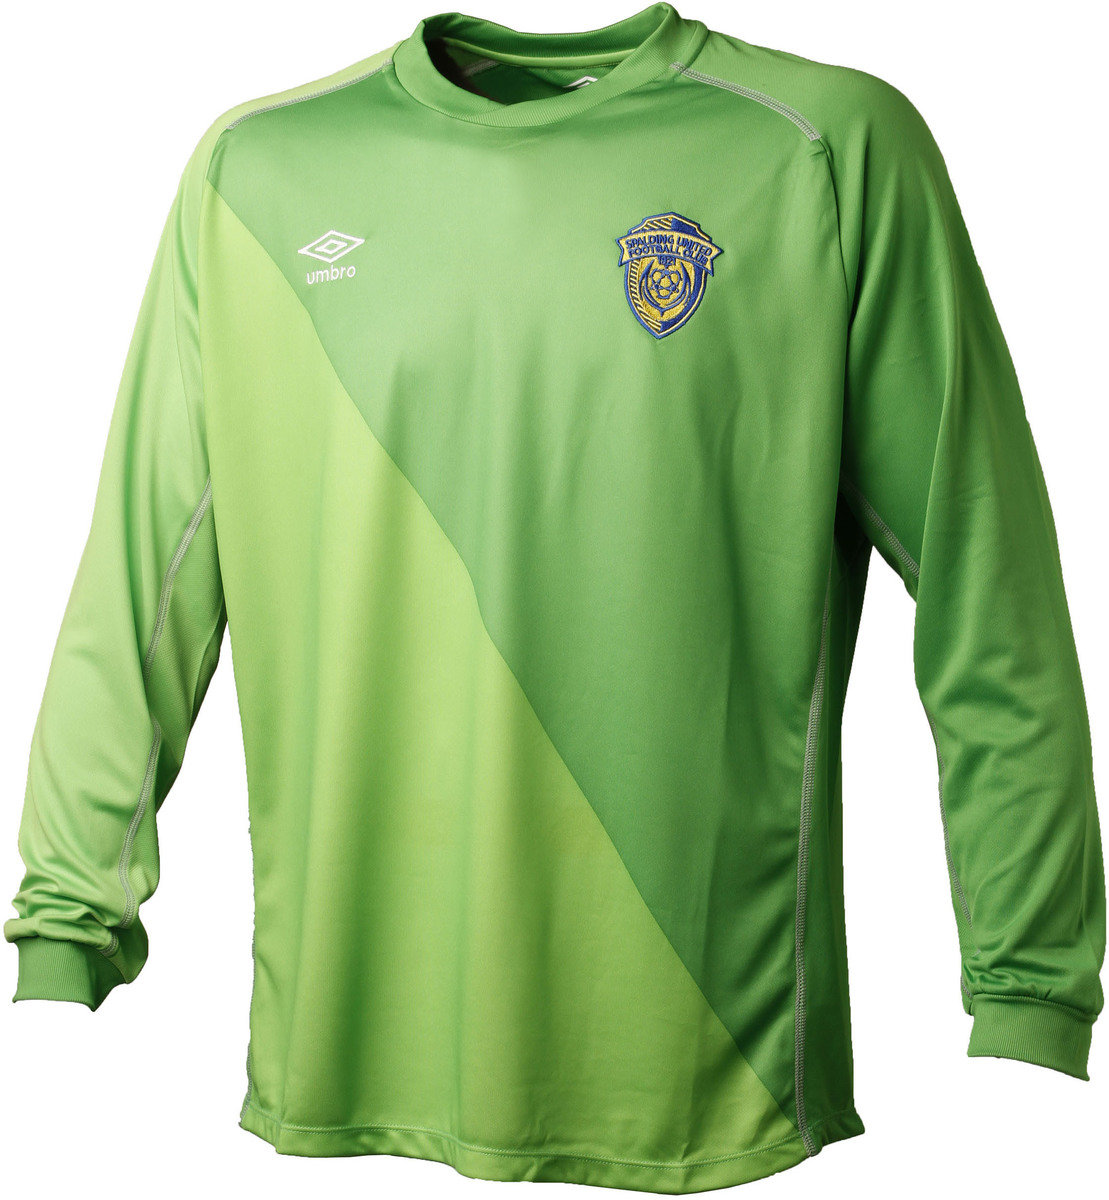 SPALDING UTD 16/17 GOALKEEPER SHIRT